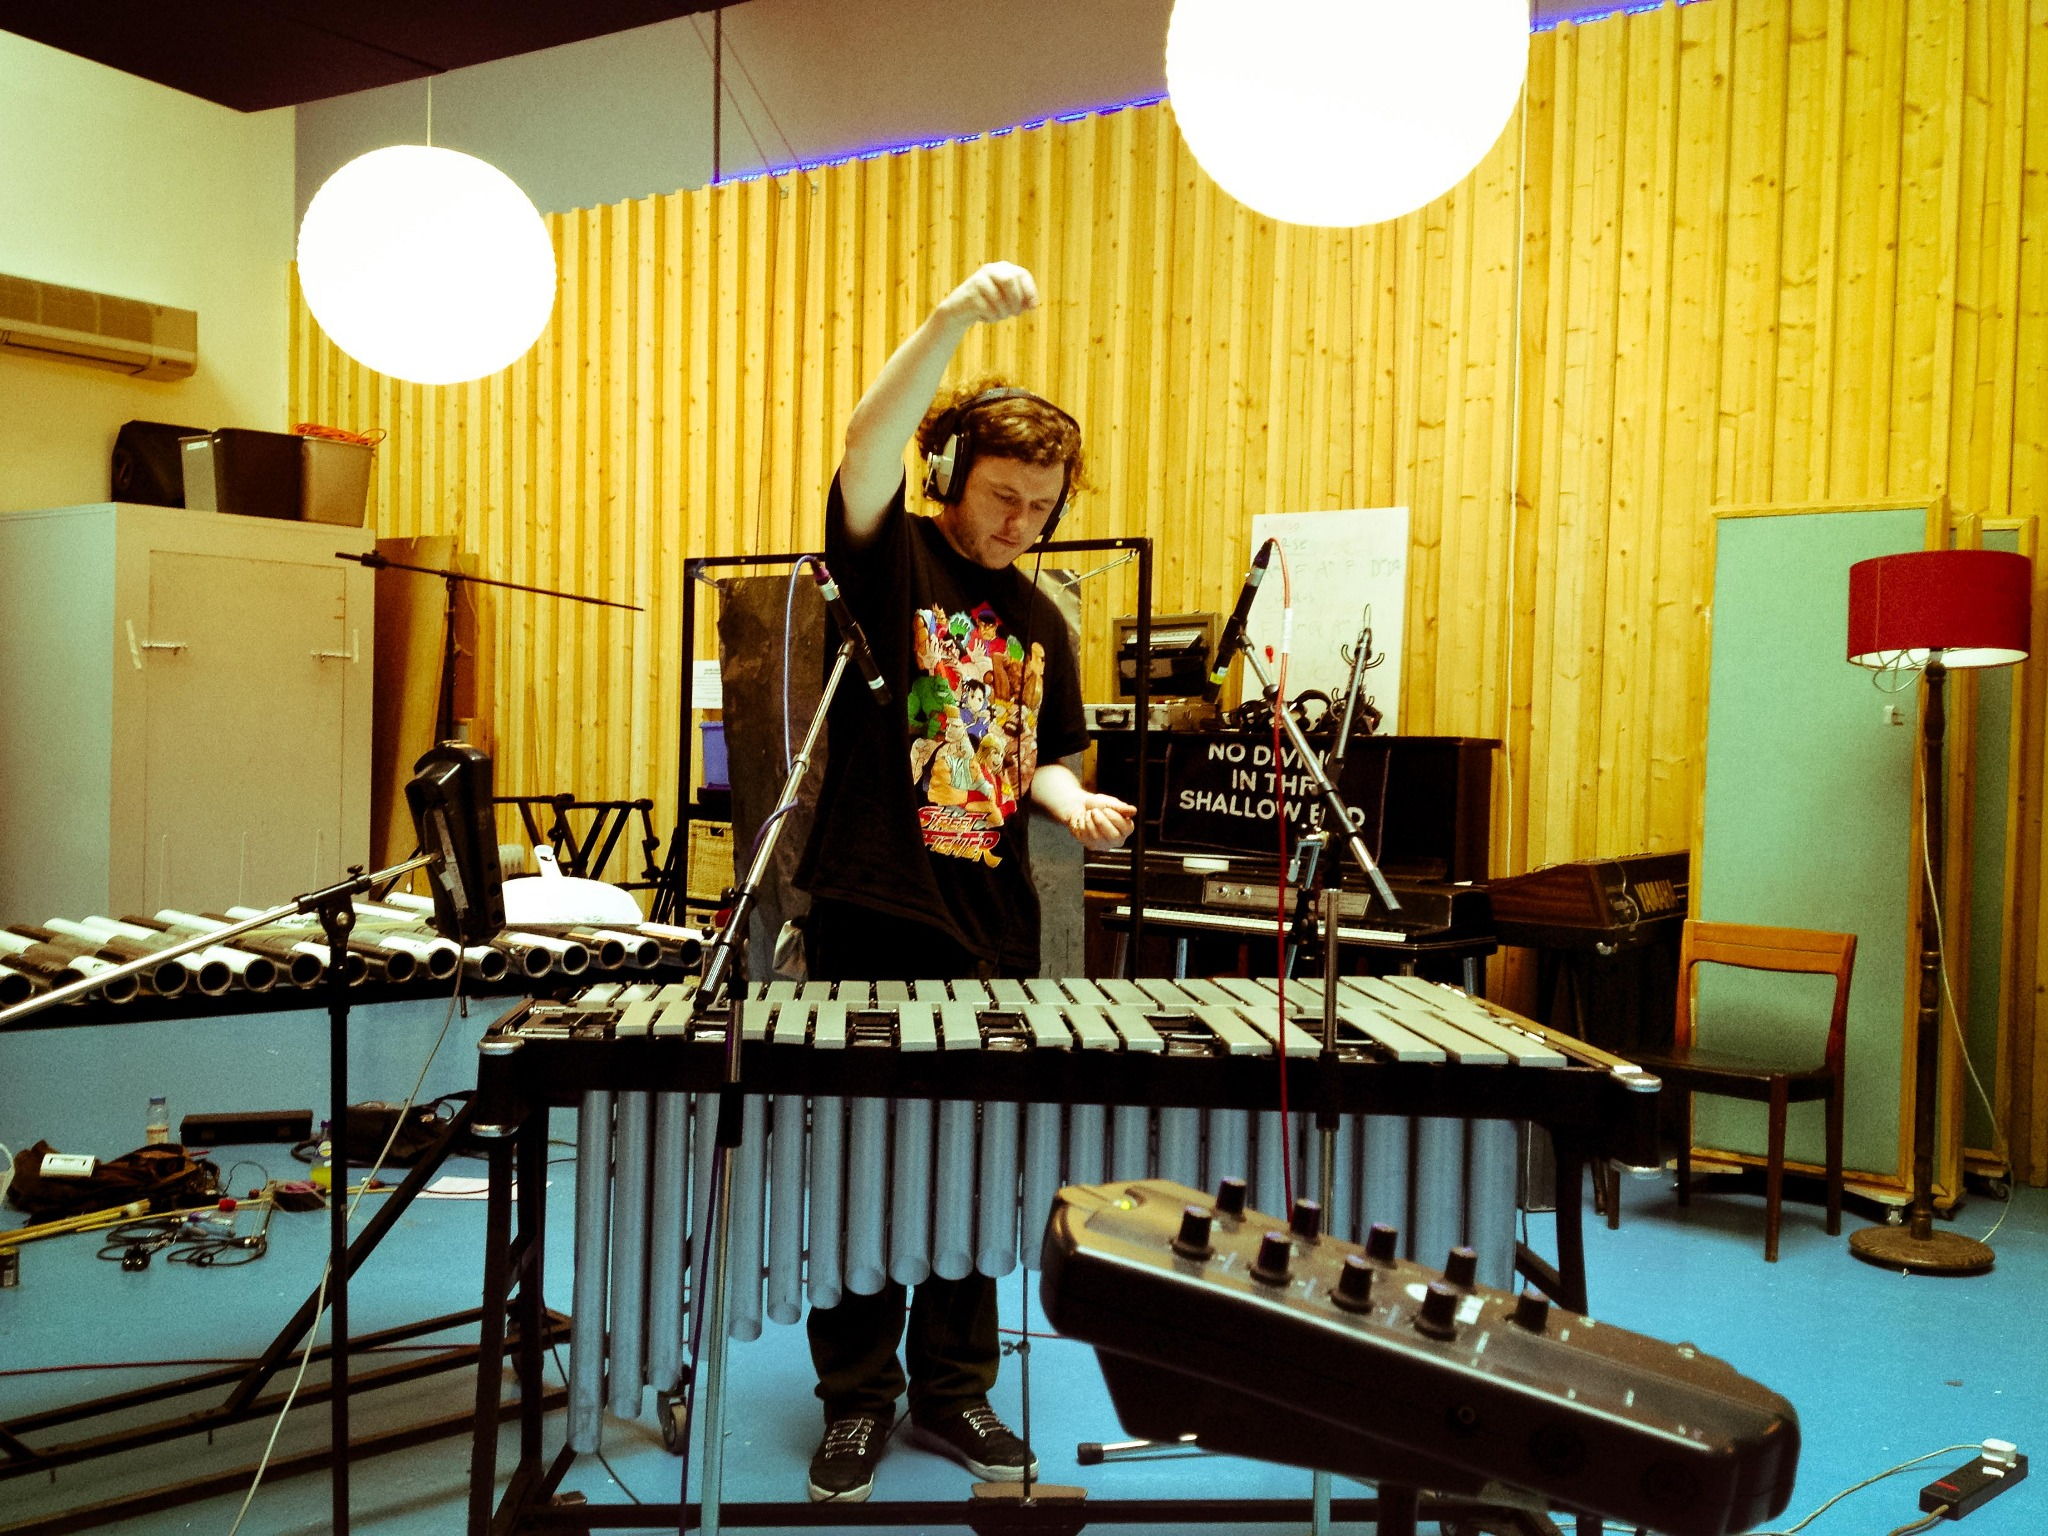 Vibraphone recording. 2 x DPA 4015As. Using a variety of different tools: thick chains, nails (dropping them), brushes, gaffer tape (peeling), bowing and playing(!). [Matt dropping things on the vibraphone]